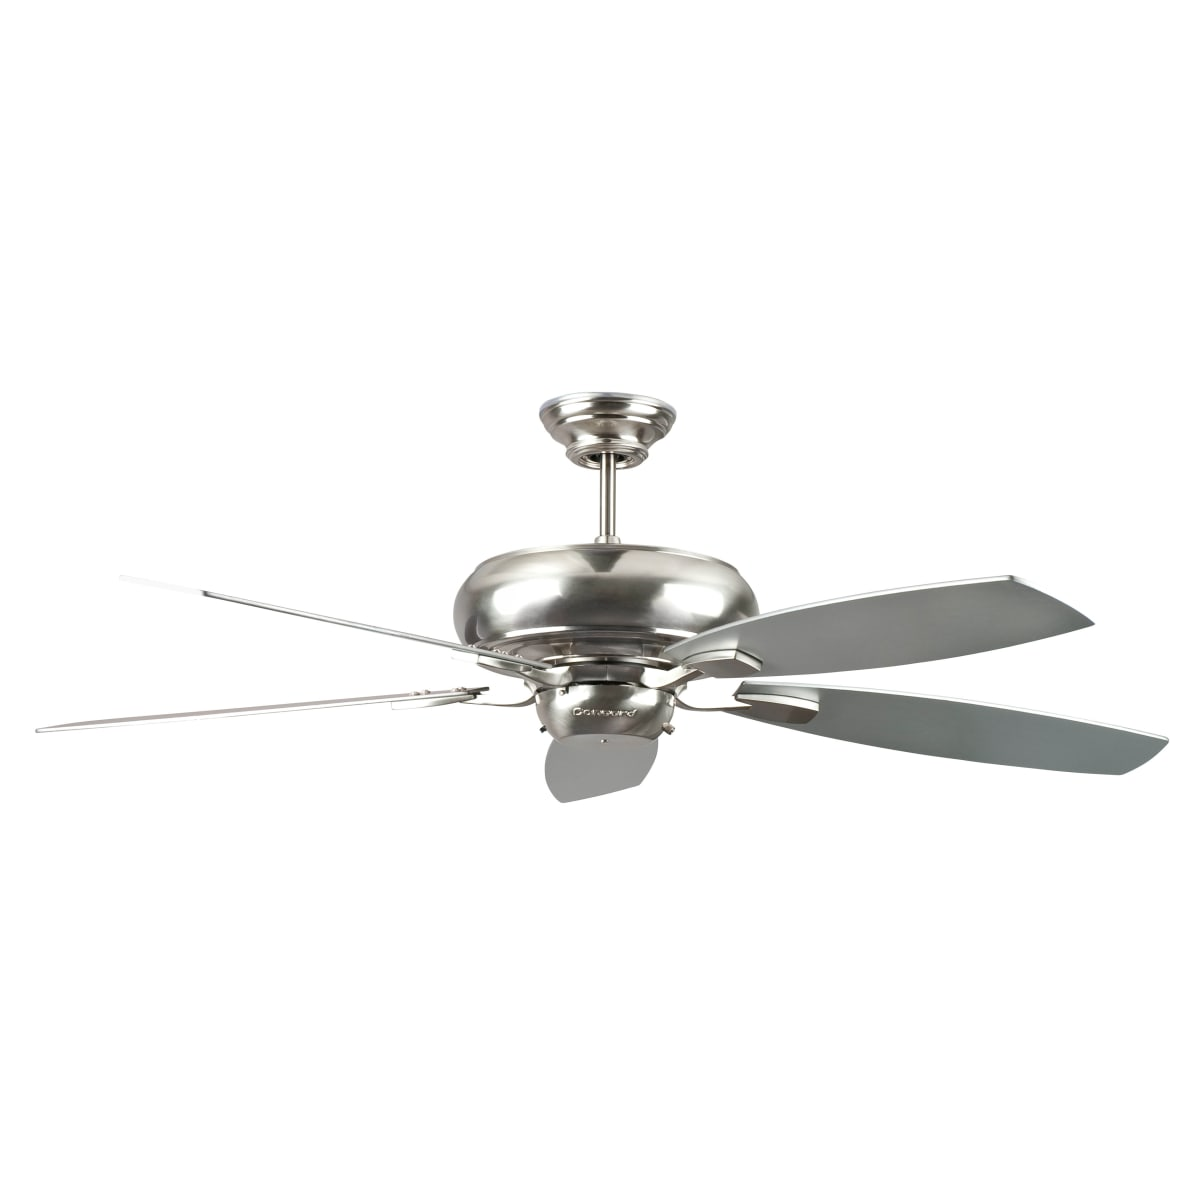 Concord 52rs5obb Oil Brushed Bronze Roosevelt 52 5 Blade Ceiling Fan Wiring Diagram